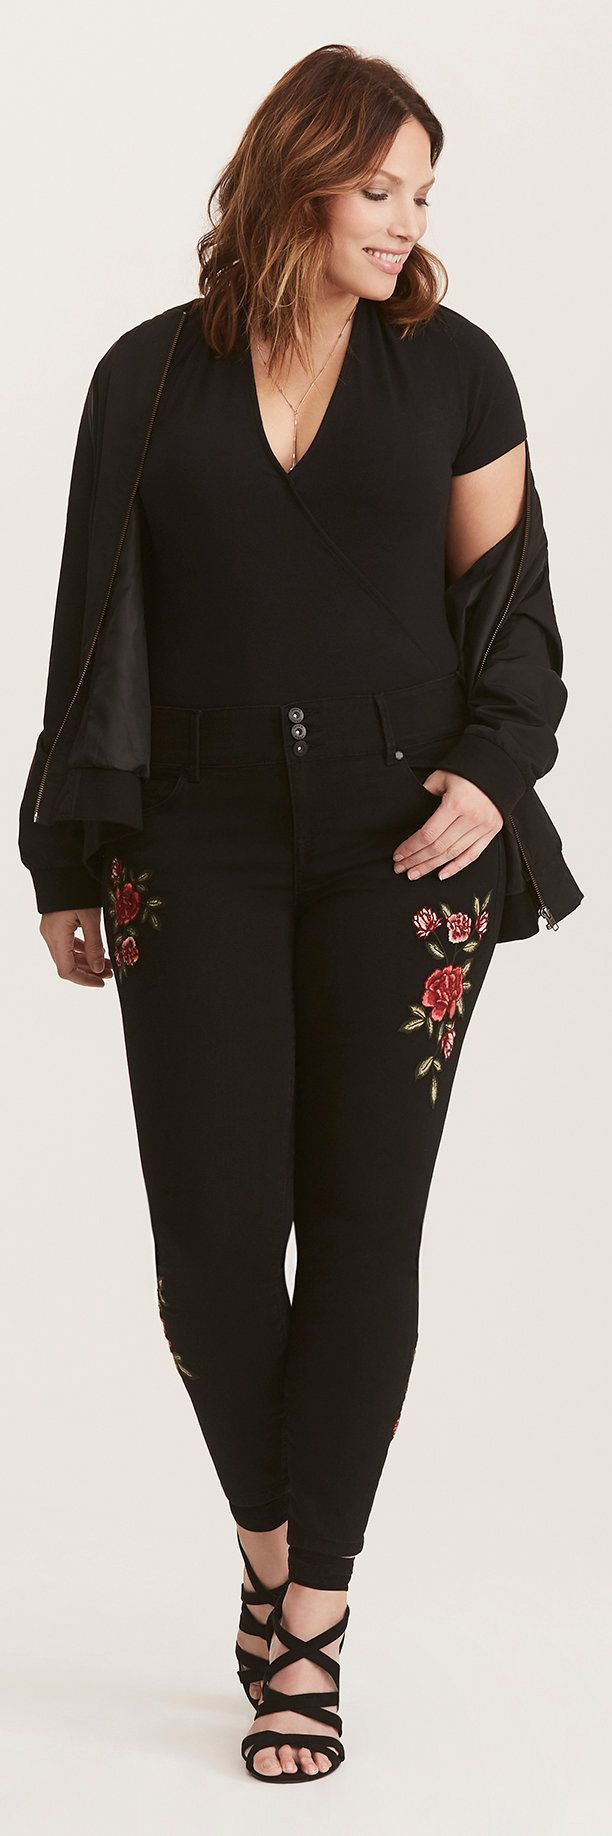 Jeggings - Floral Embroidered Black Wash Plus size